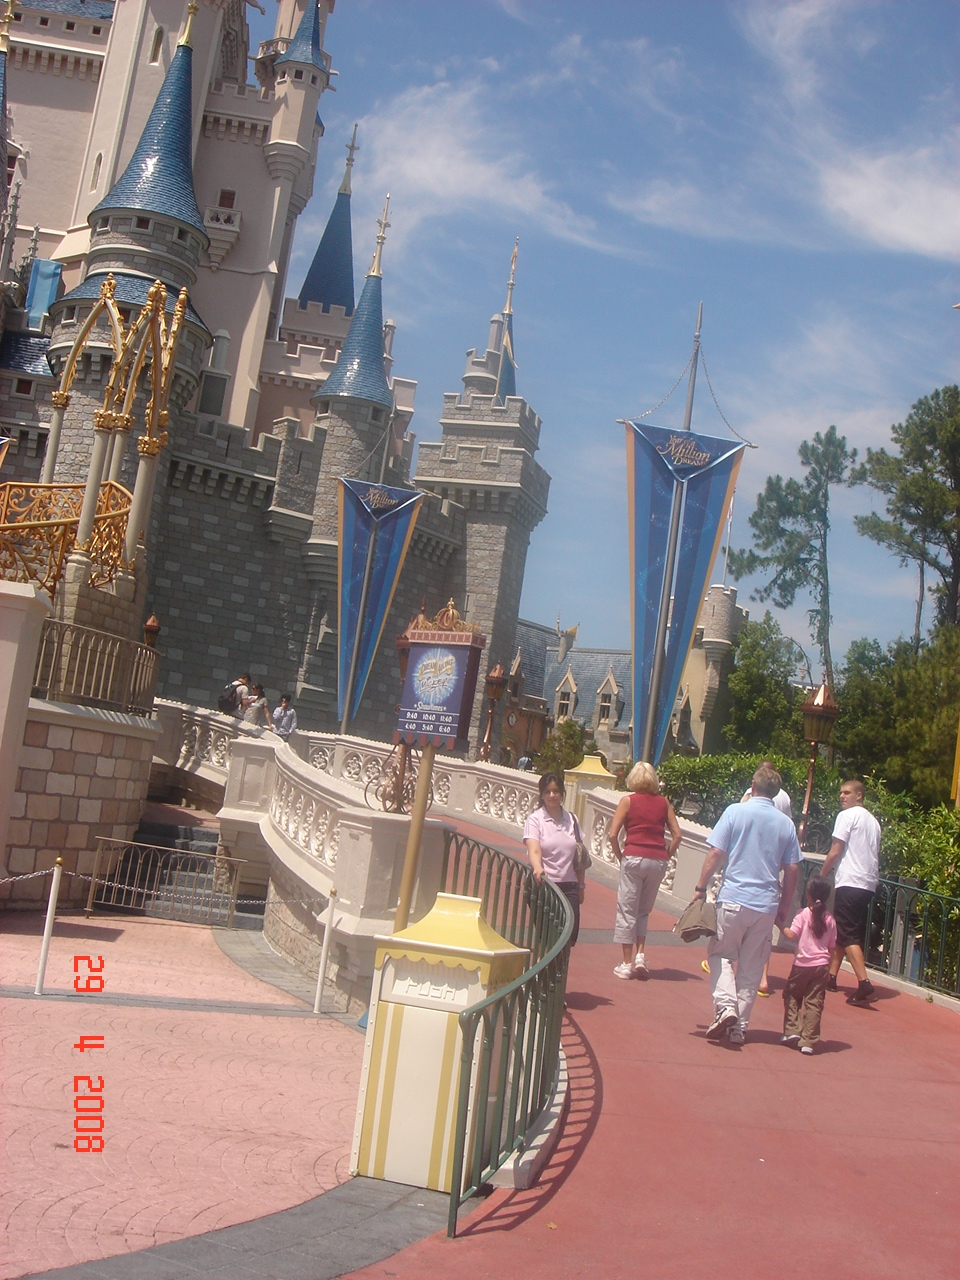 Fantasy Land at Magic Kingdom in Orlando